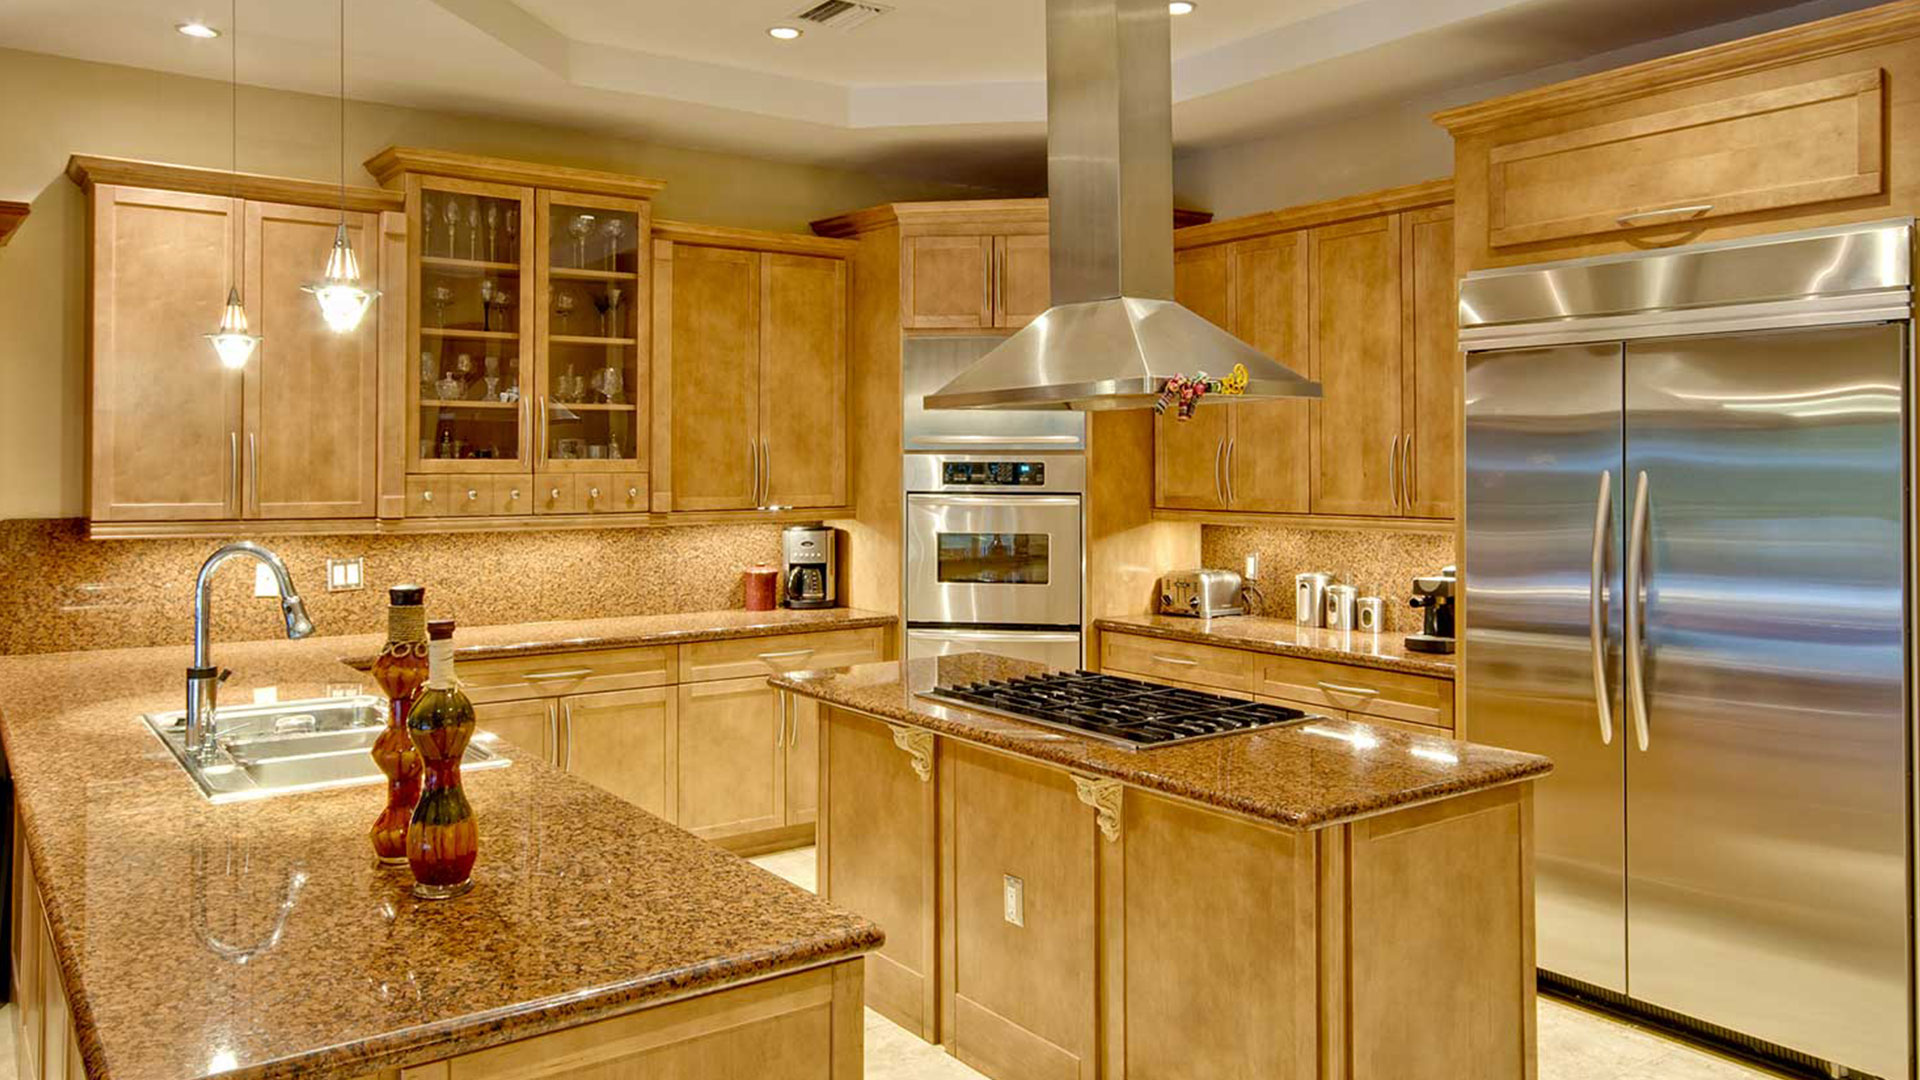 Kitchen Renovation Rochester Ny